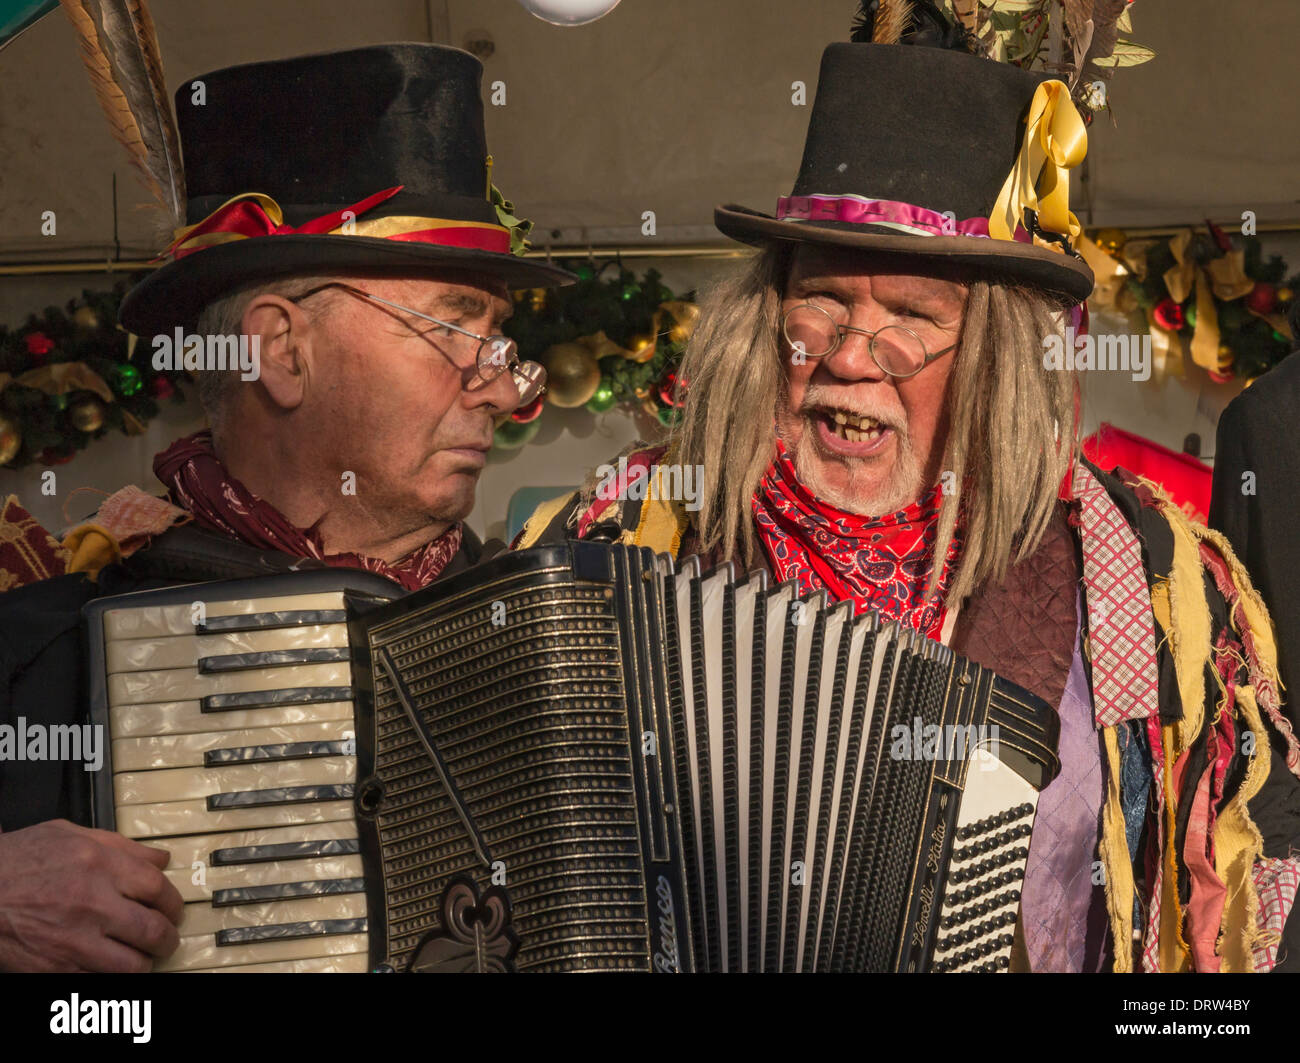 Members of the Penny Plain Theatre Company performing 'Hardcastle's Christmas Capers' at Grassington. - Stock Image